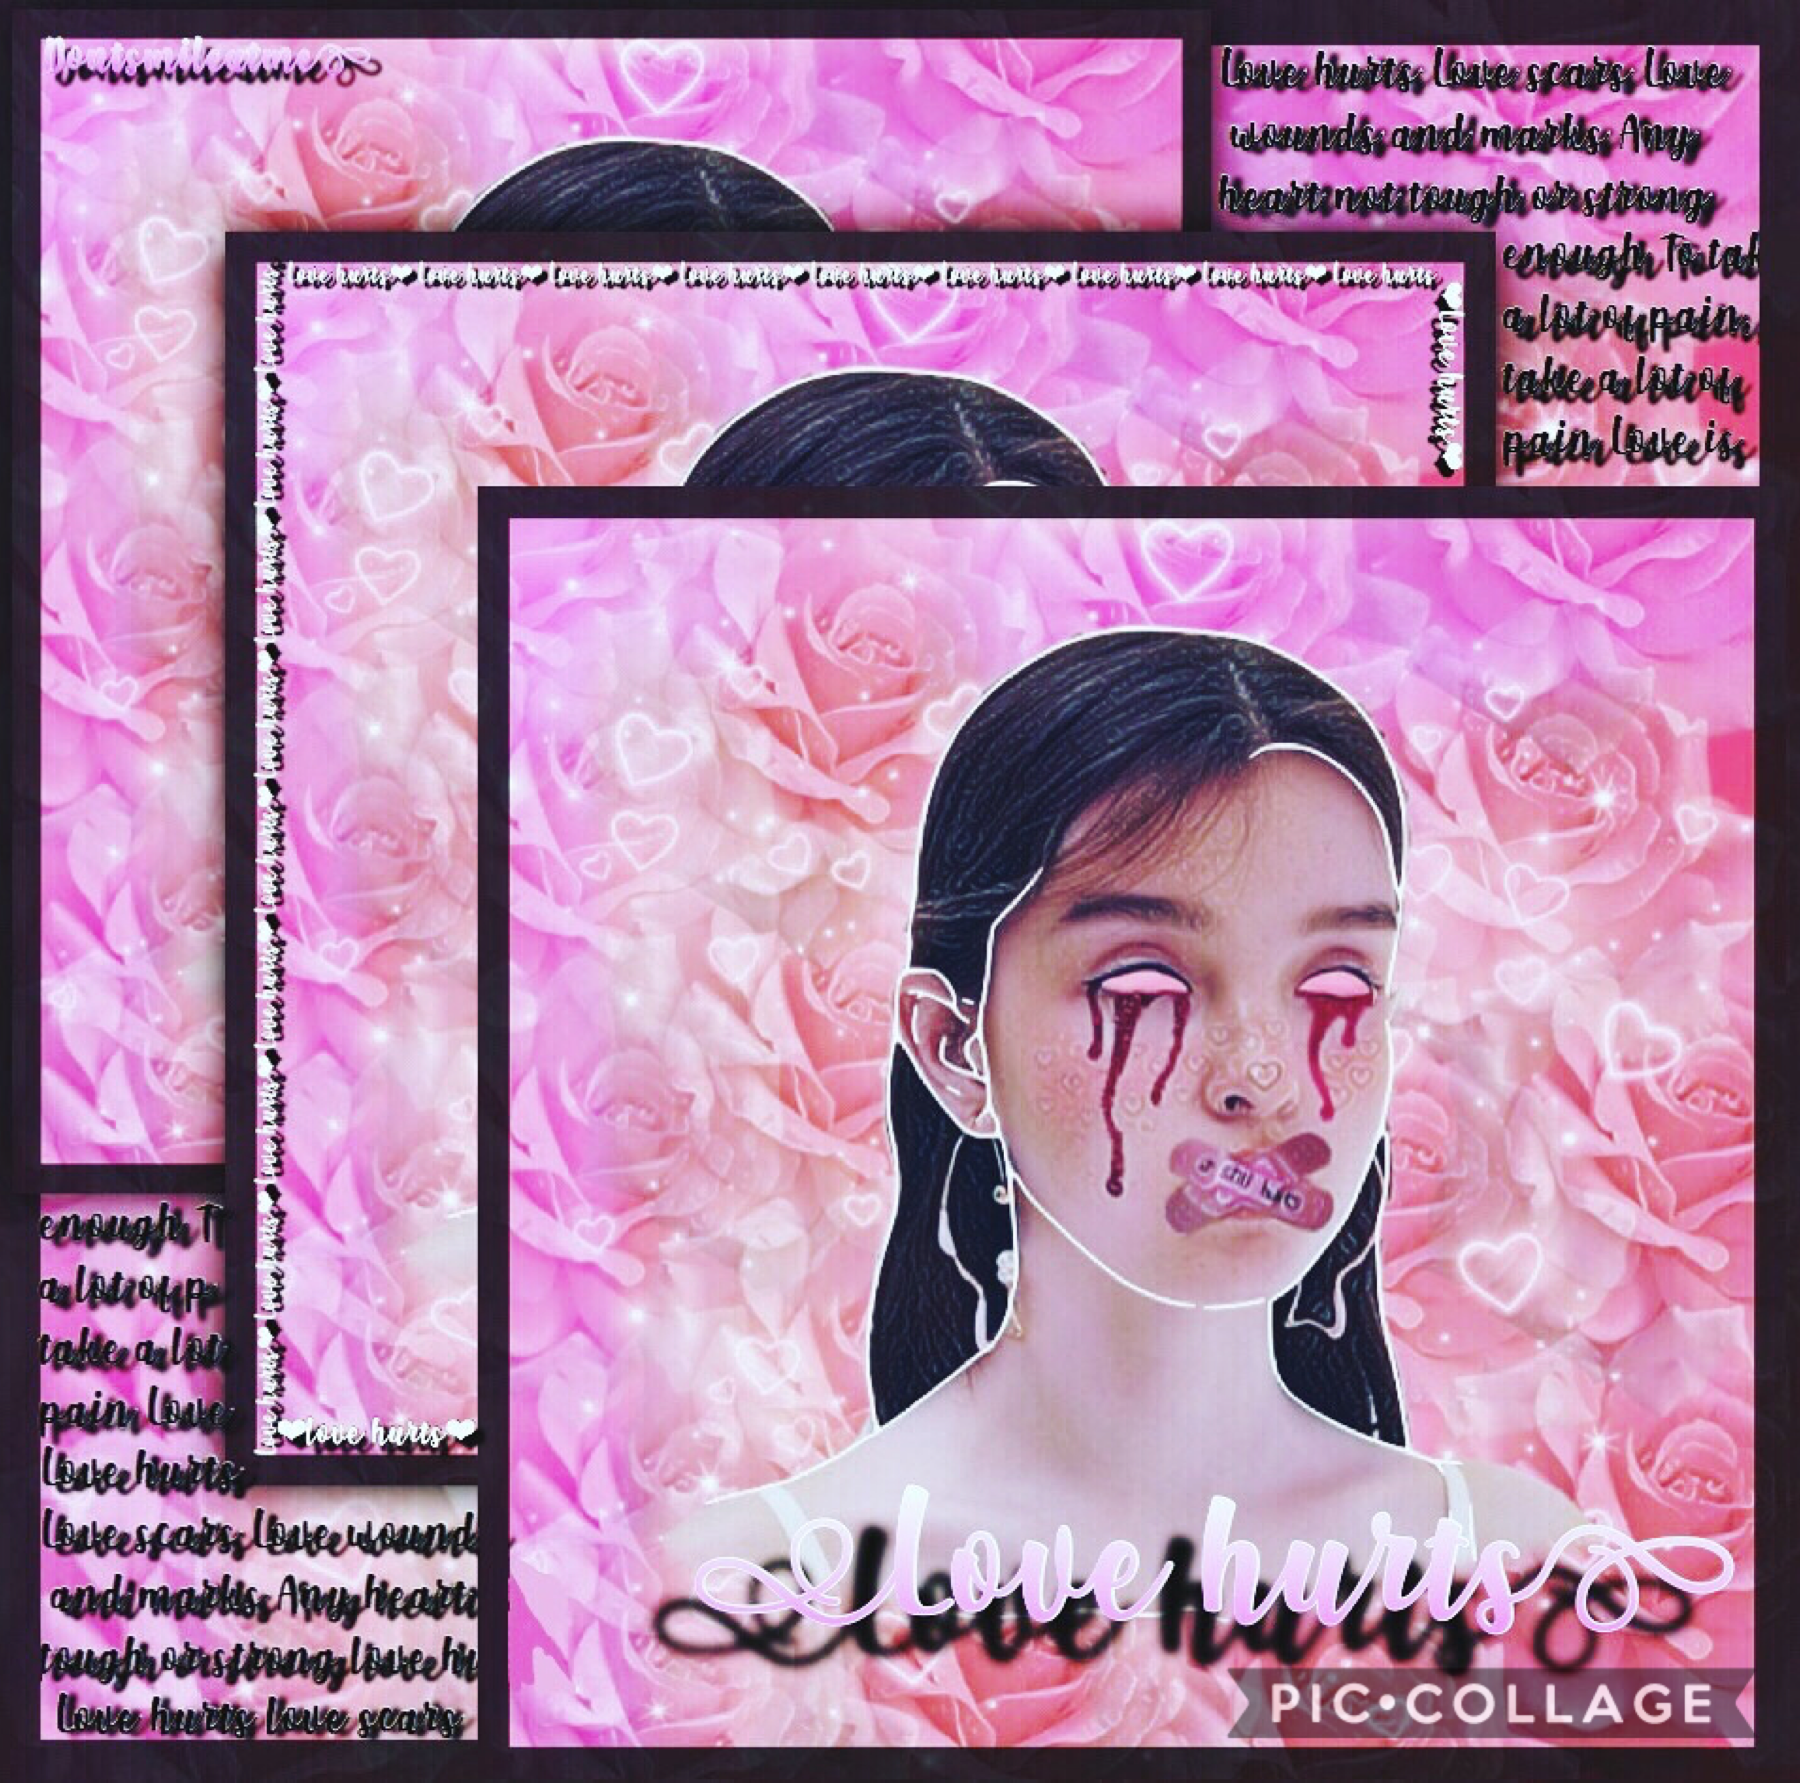 🌸💖tap💖🌸 ❤️Rate /10❤️ Lyrics🌺-love hurts-🌺 Don't like this one but had to post something! I promise I will get better at posting😂please comment requests or remix a picture of a person you want me to edit:)! I'm running out of ideas:/⬇️⬇️⬇️